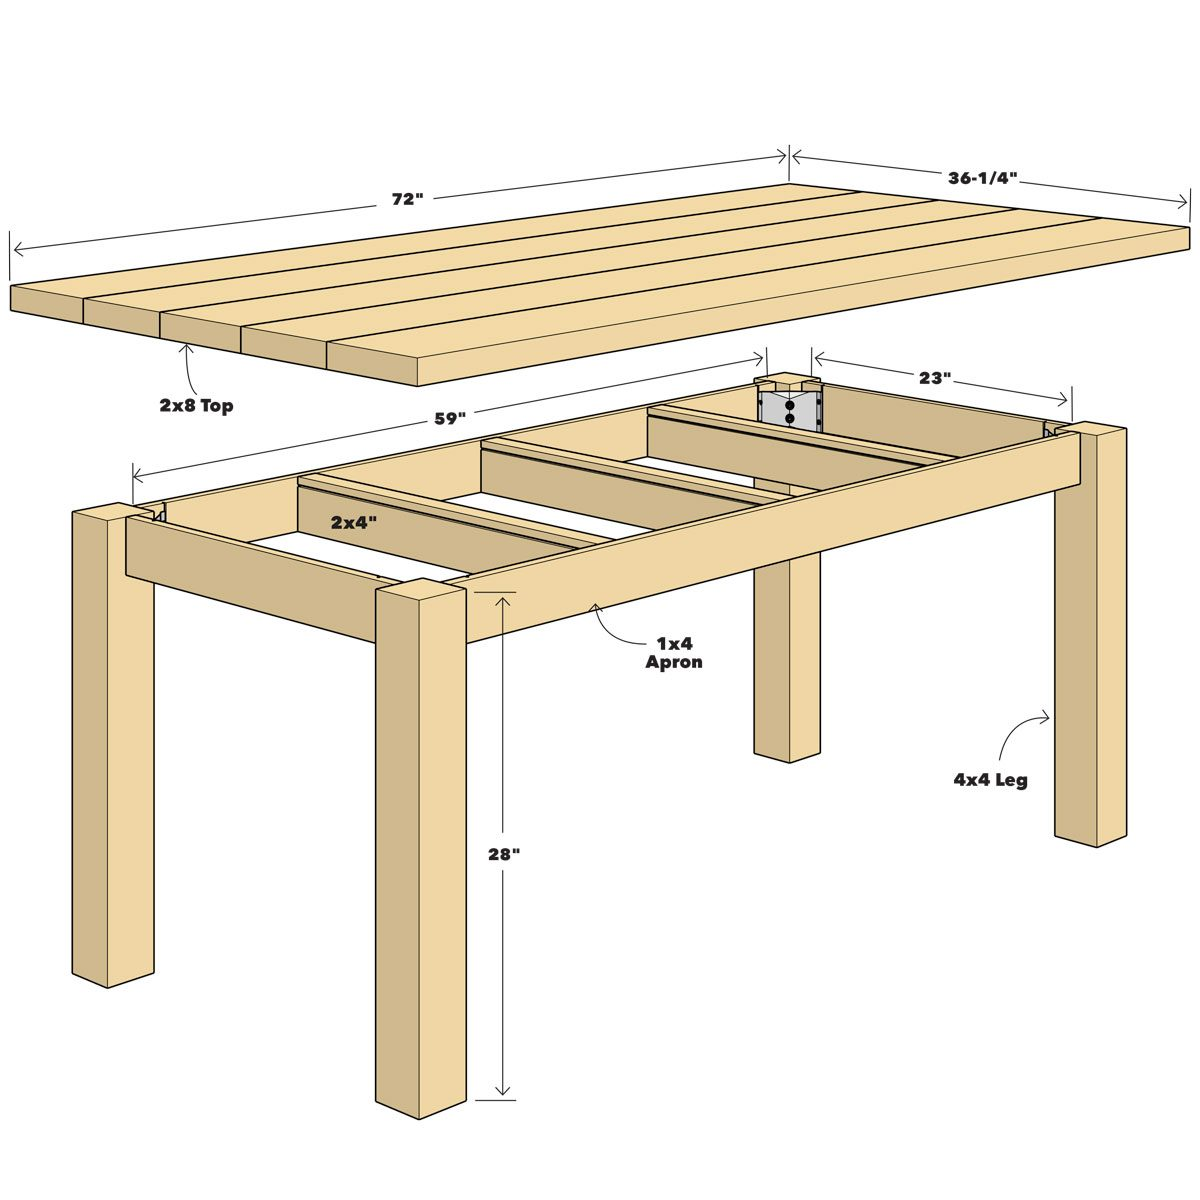 How to build a simple table Kitchen Reclaimed Wood Table Build Simple The Family Handyman Build Simple Reclaimed Wood Table The Family Handyman